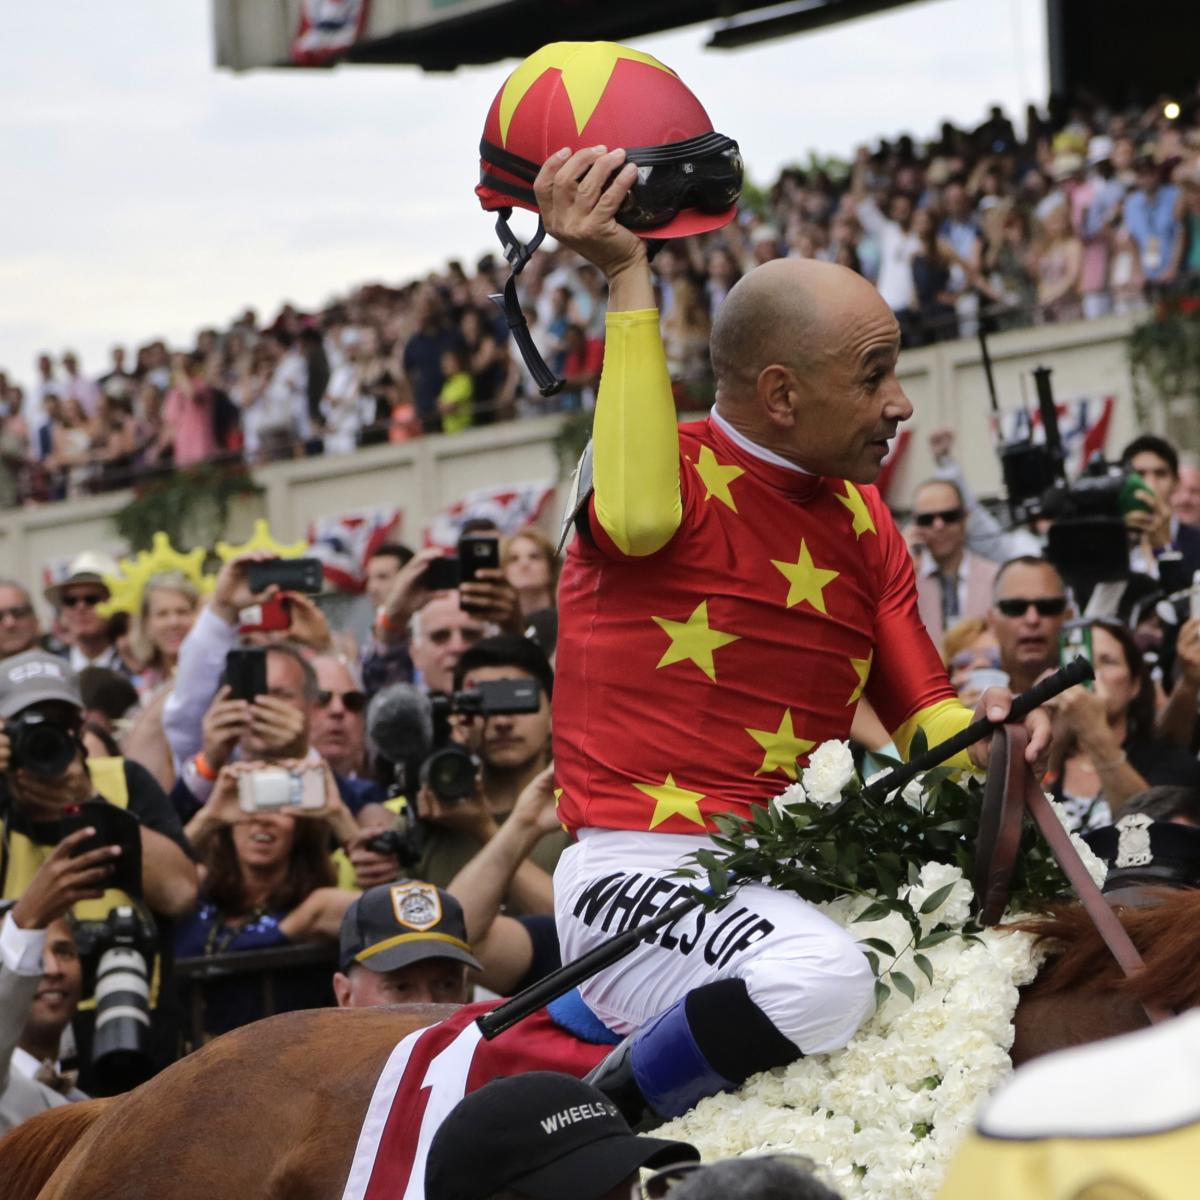 Belmont Stakes 2018 Results: Times, Payouts for Justify, Top Contenders